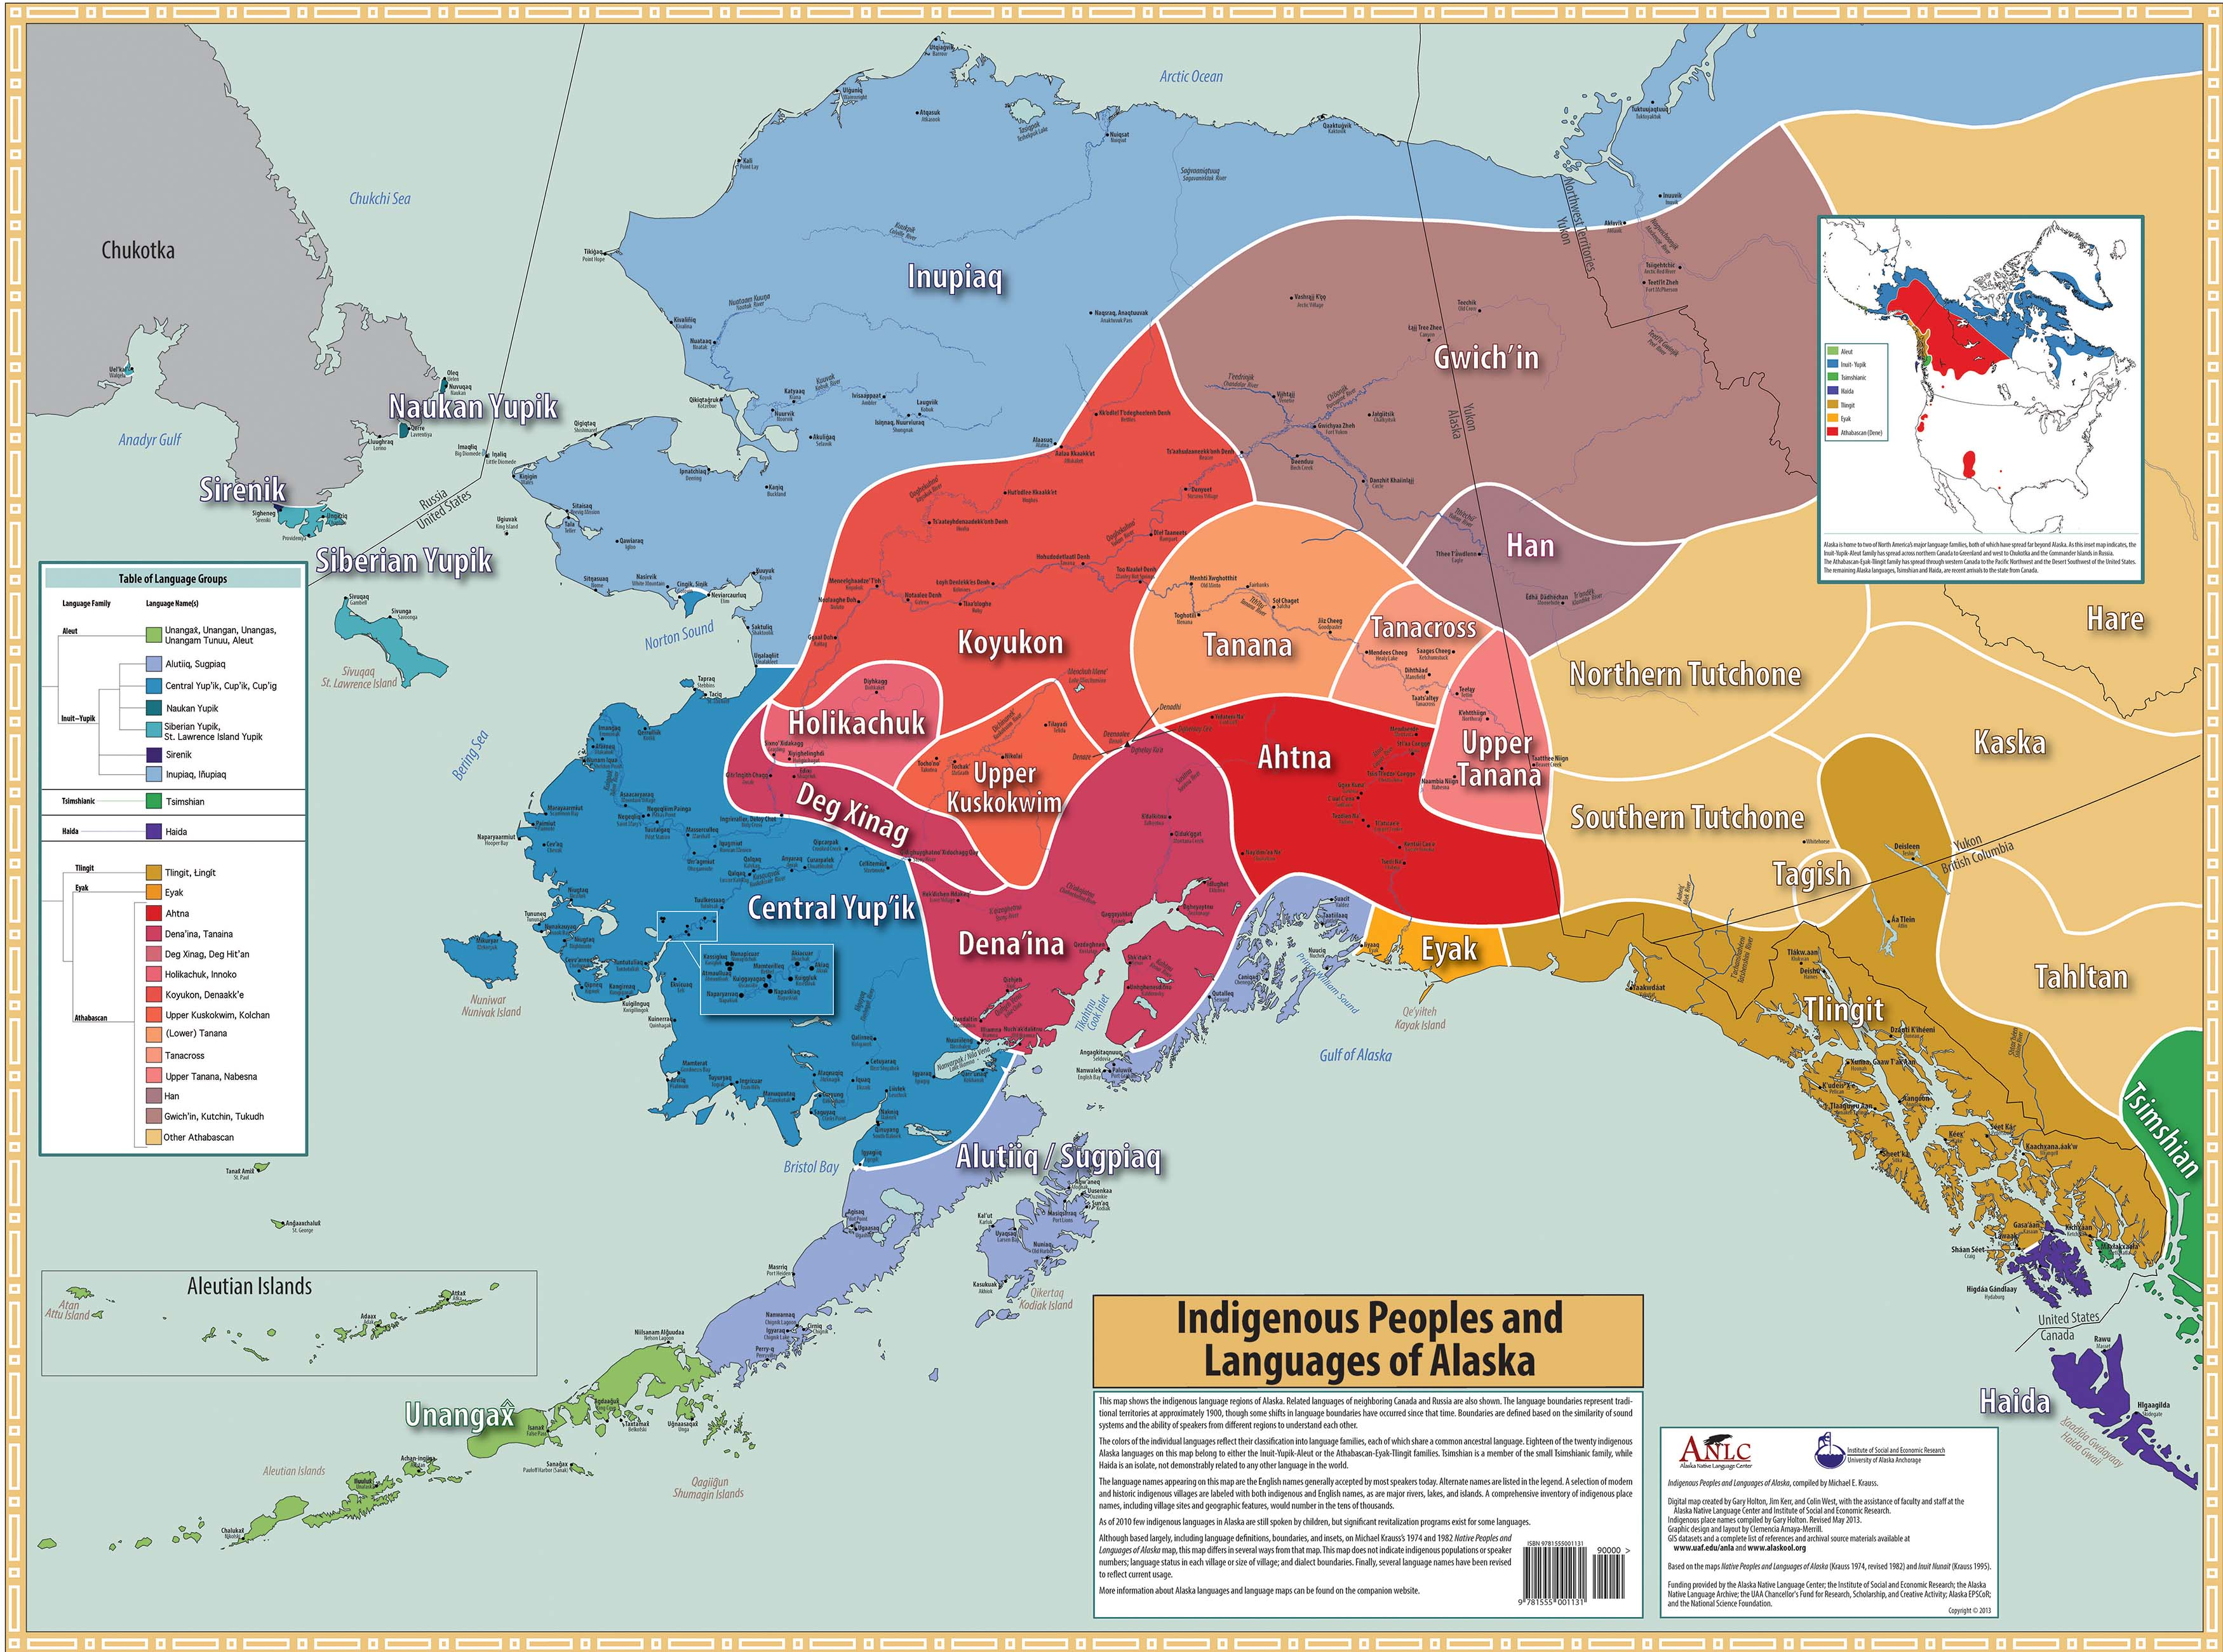 Map of the Languages of Alaska's Indigenous People